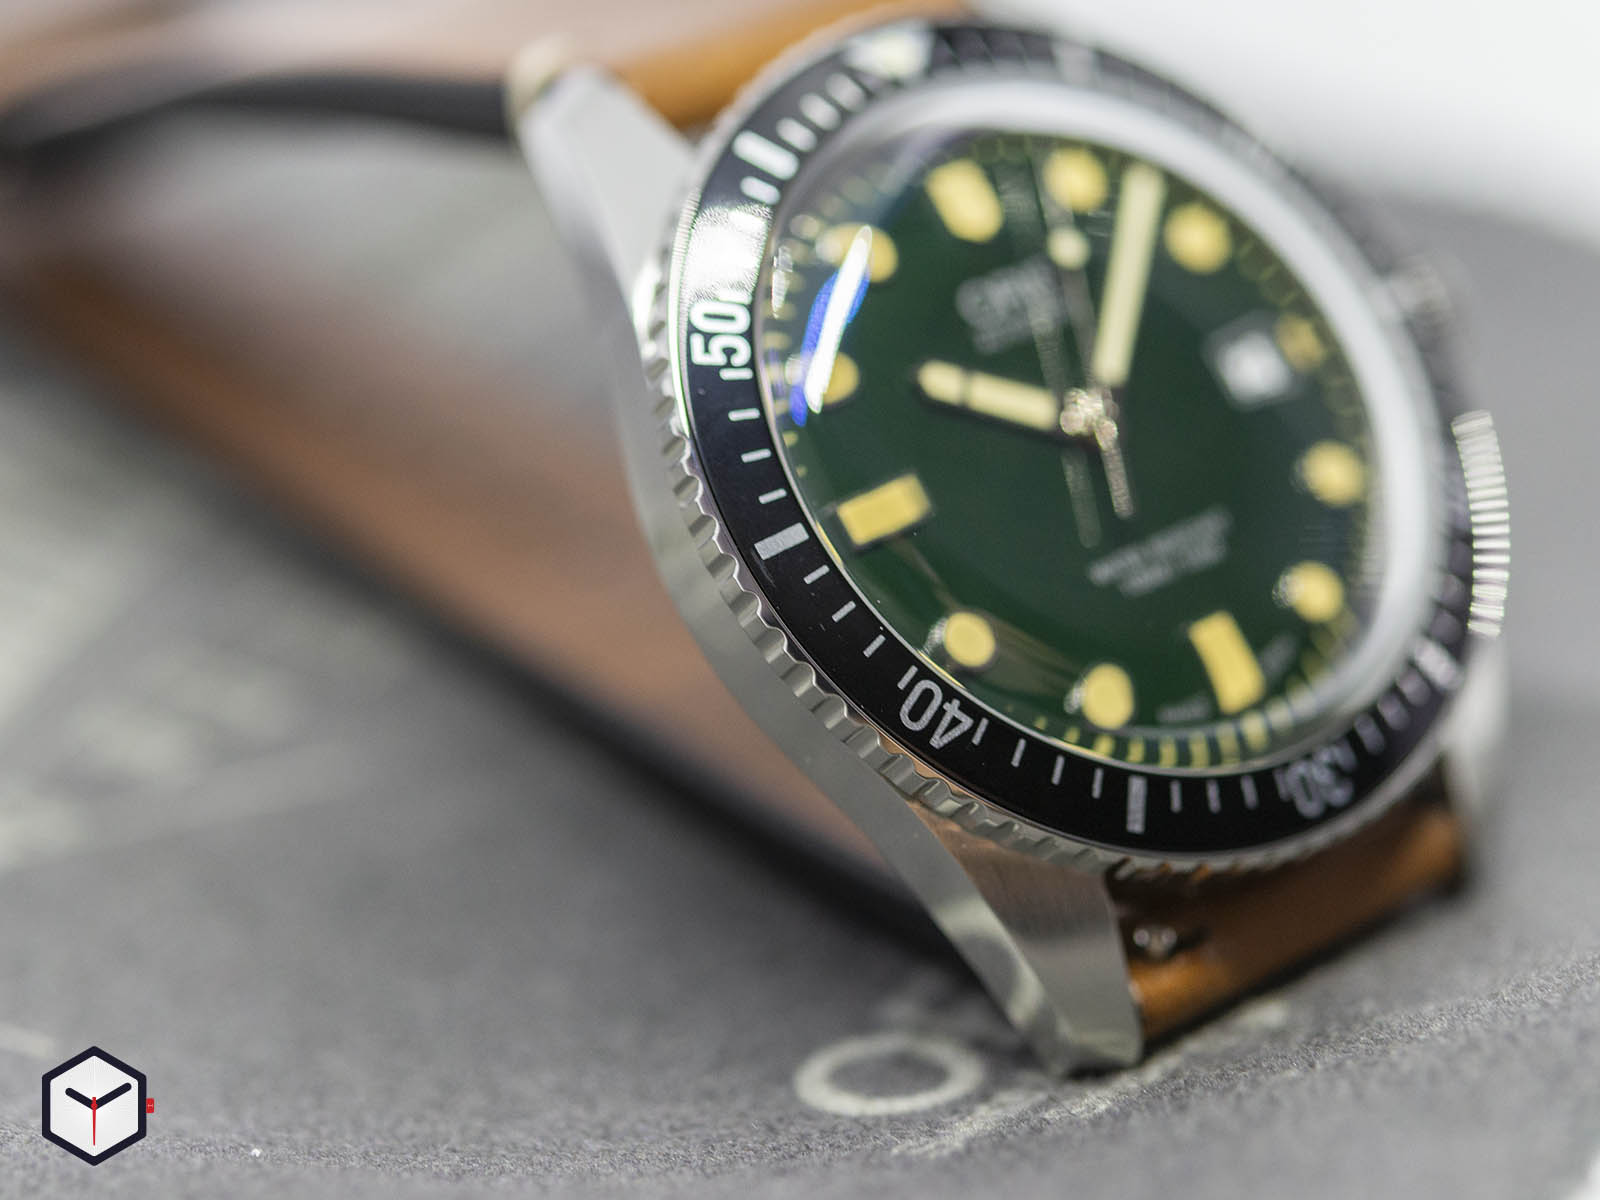 01-733-7720-4057-07-5-21-02-oris-divers-sixty-five-green-dial-2.jpg